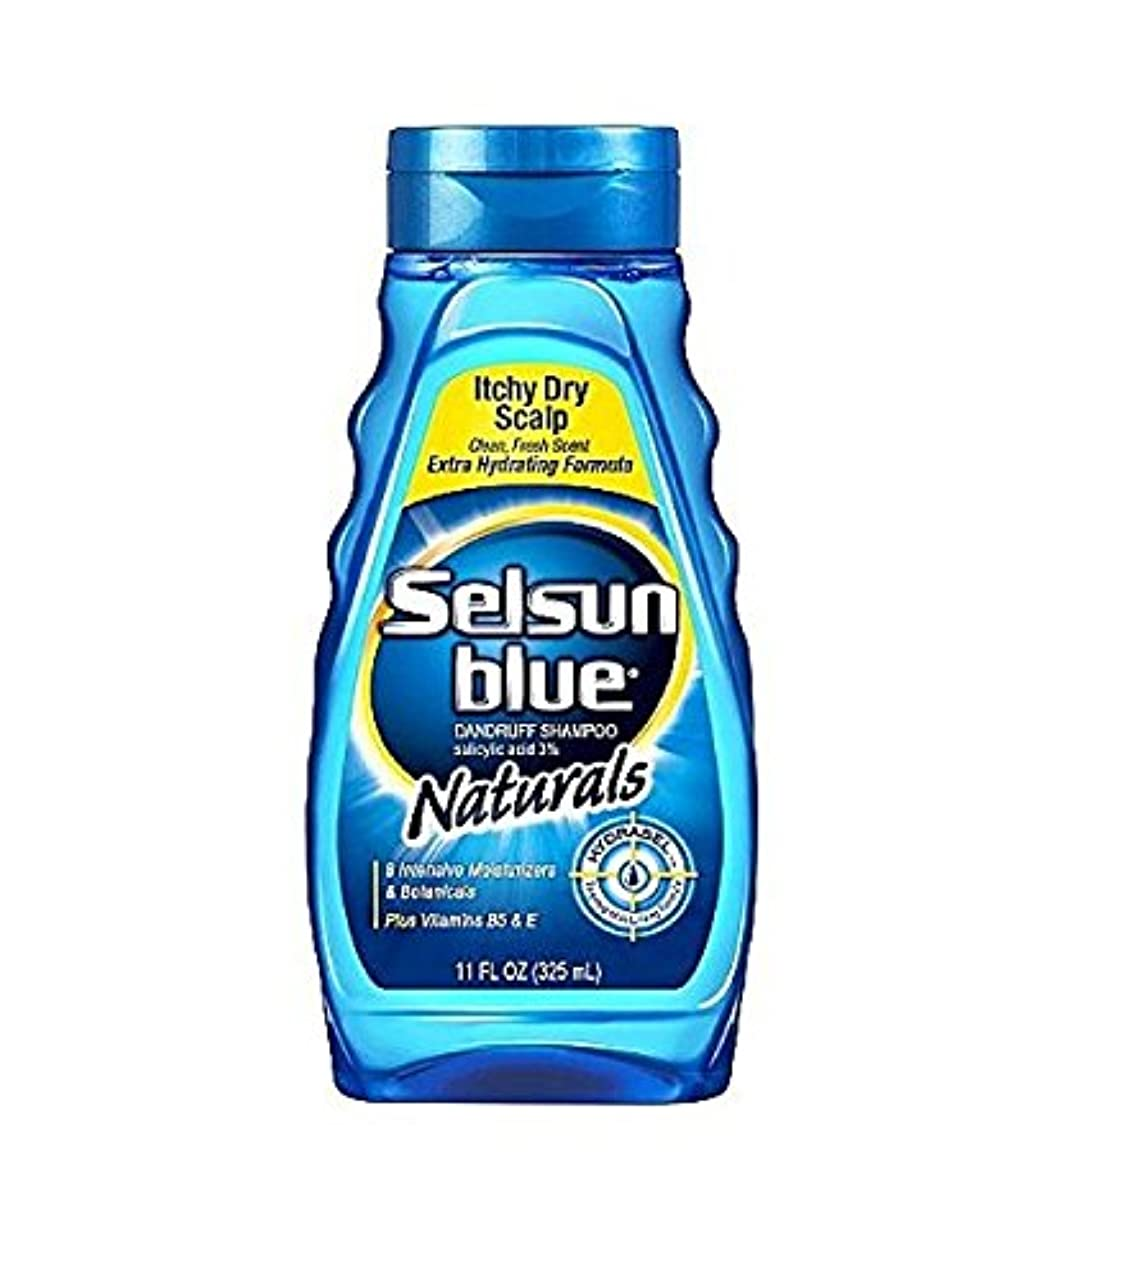 発言するトイレ明らかSelsun Blue Naturals Dandruff Shampoo Itchy Dry Scalp 325 ml (並行輸入品)